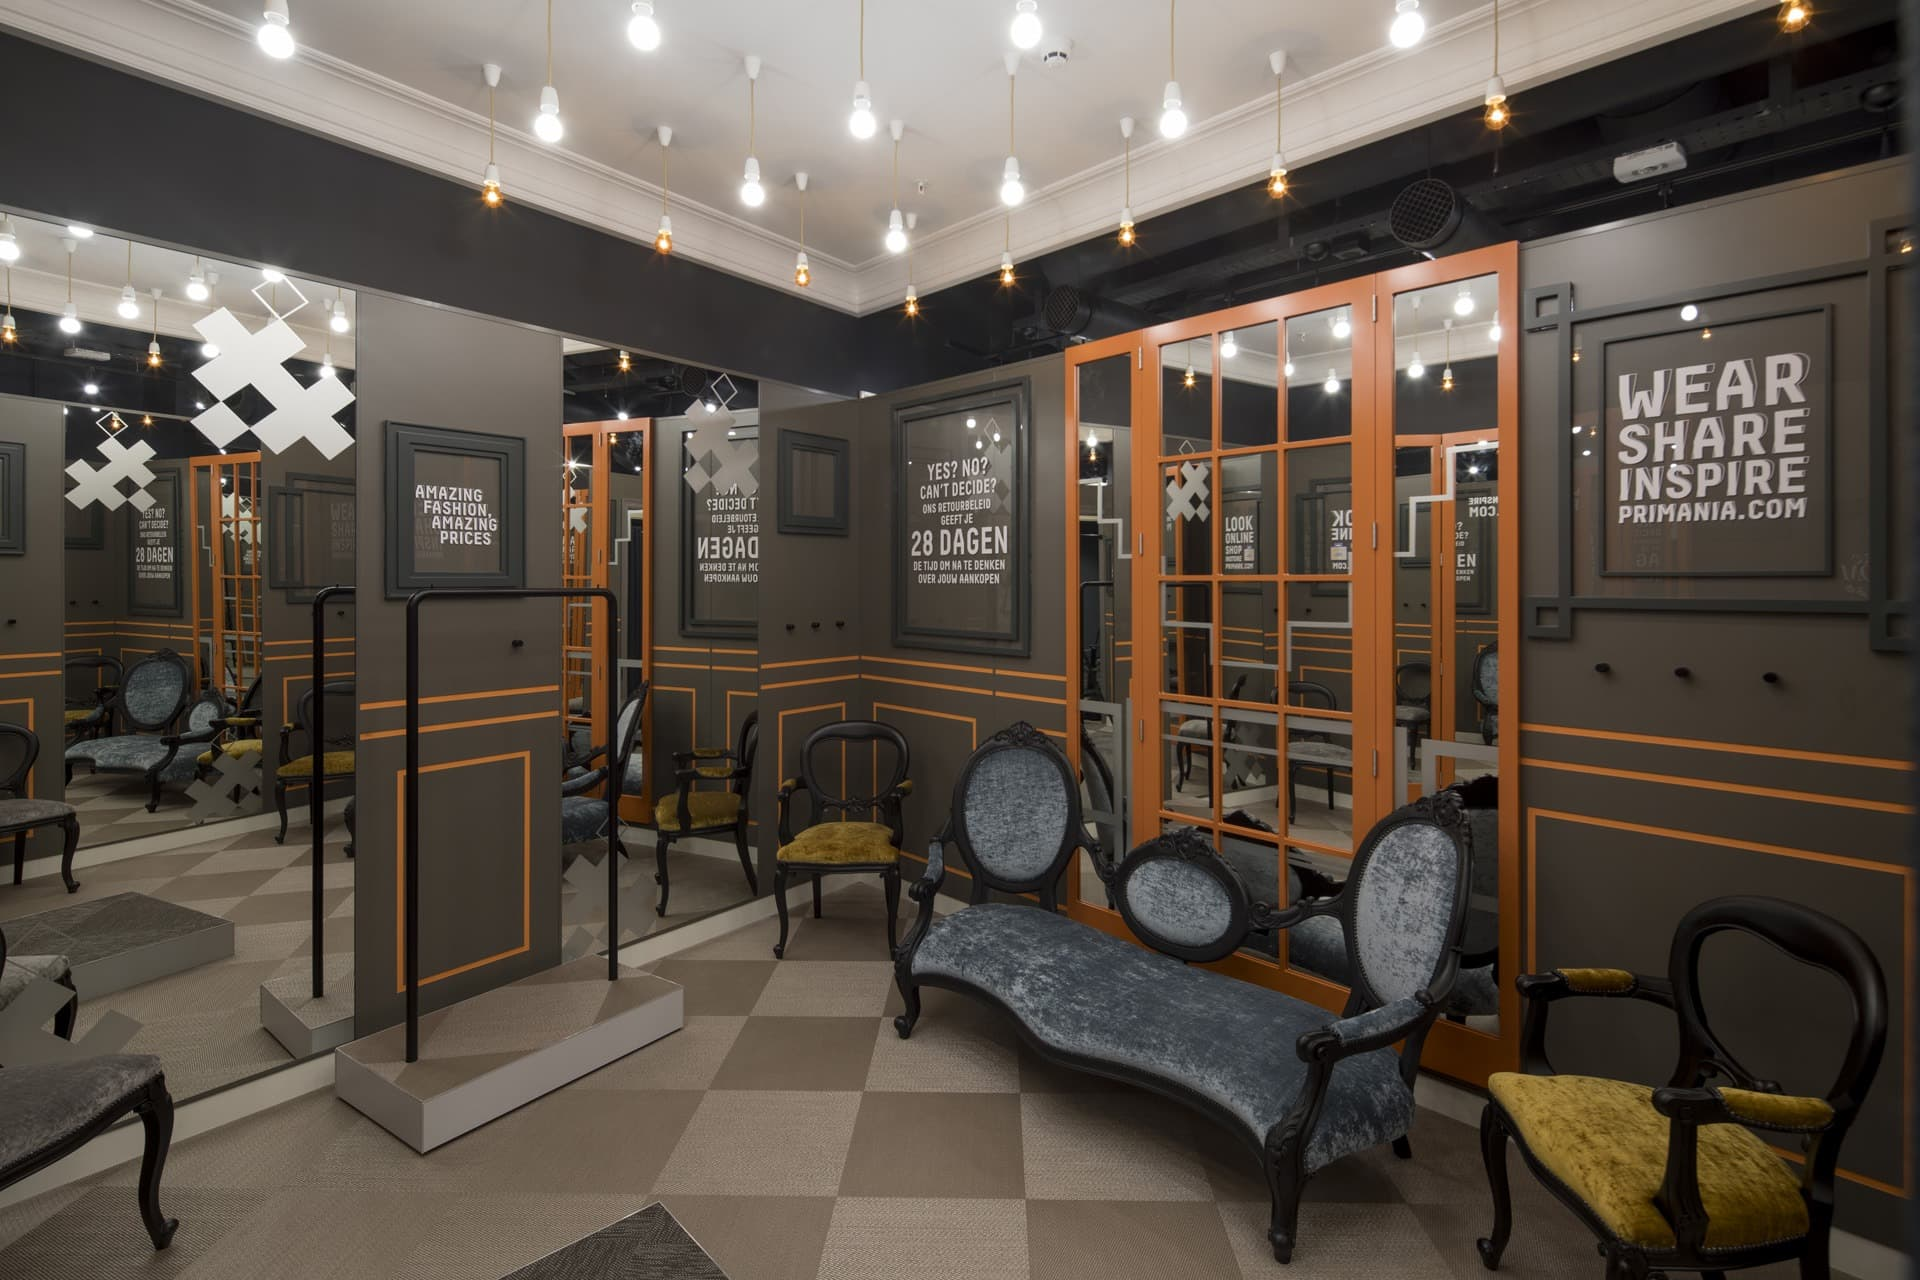 Men's dressing room with wall mirrors and handing ceiling bulbs